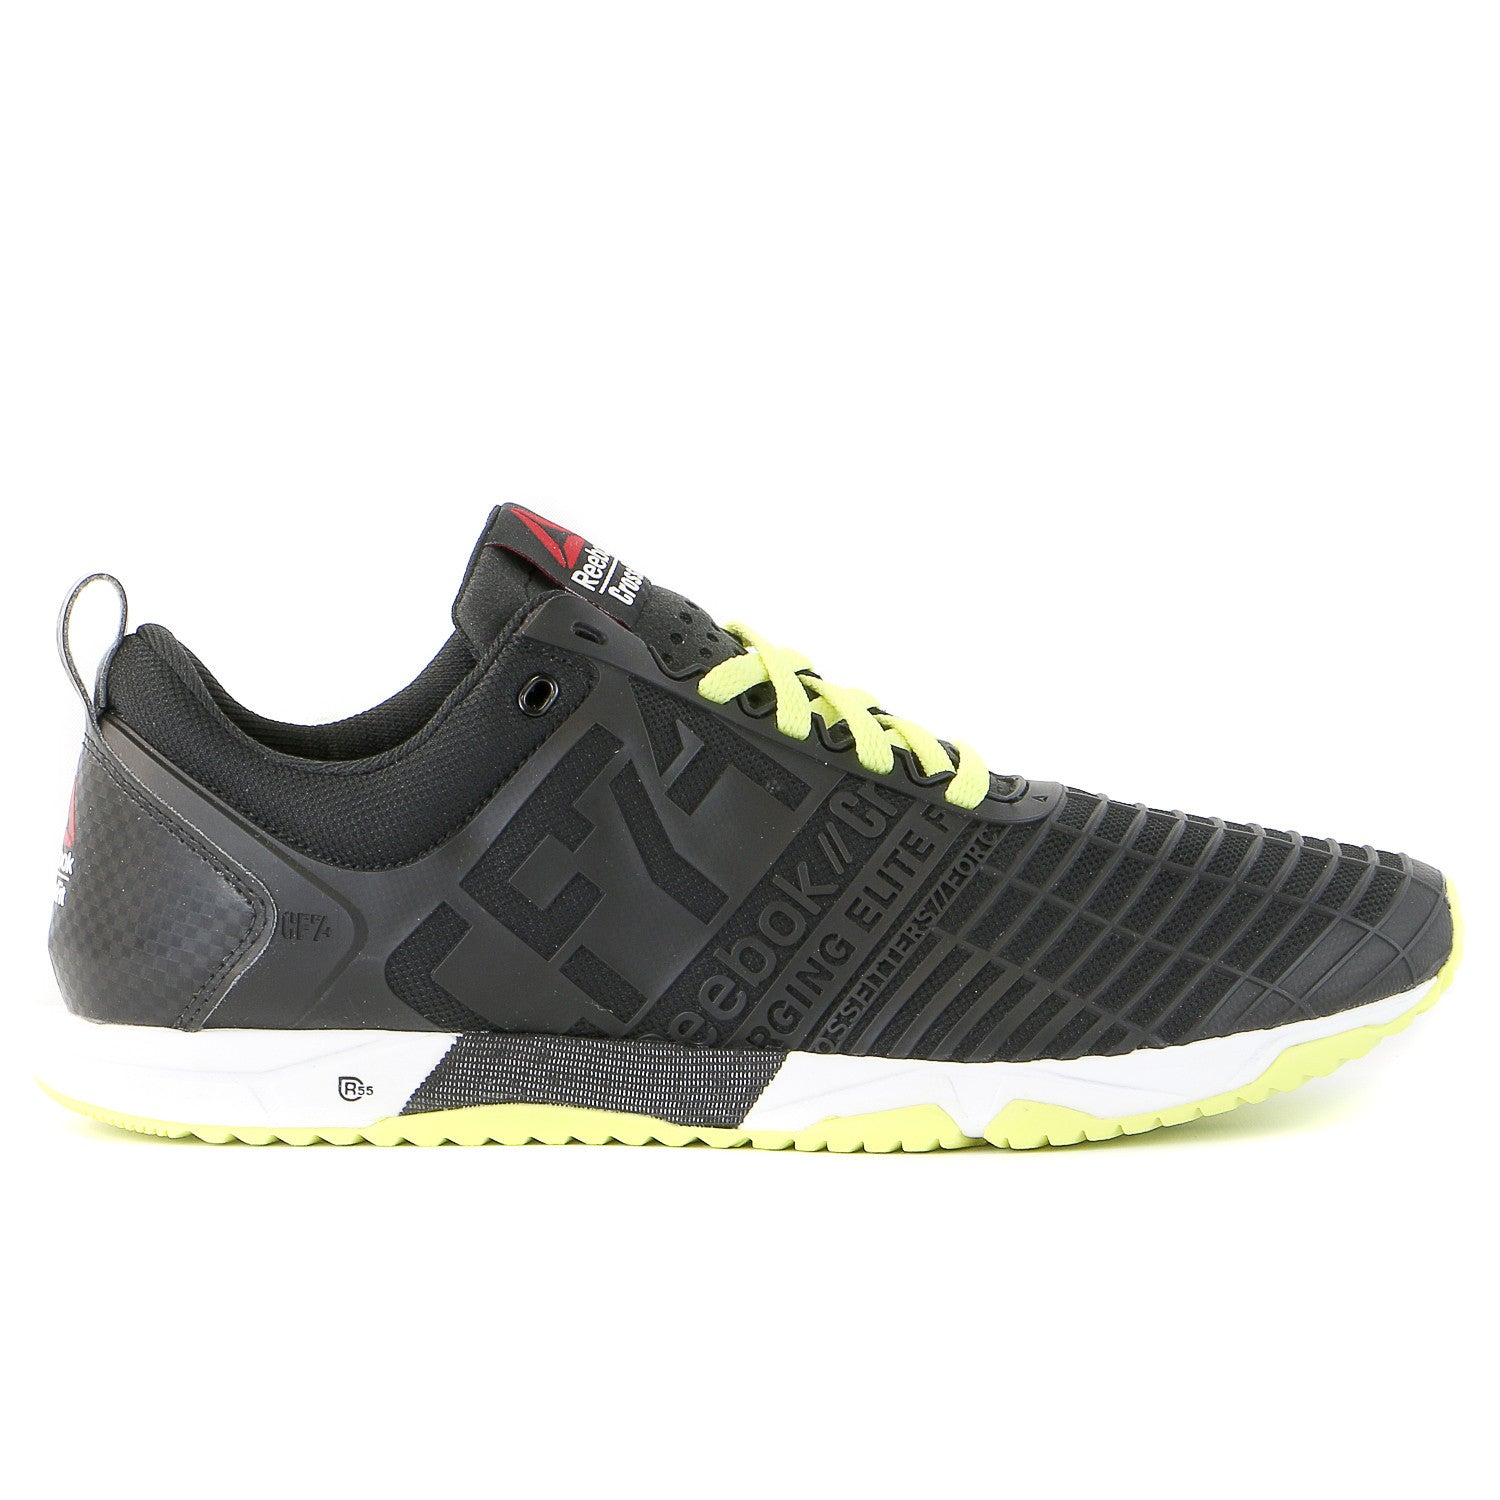 Reebok CrossFit Sprint Trainer Cross-Training Sneaker Shoe - Black Gre -  Shoplifestyle 4dcf7d4bb